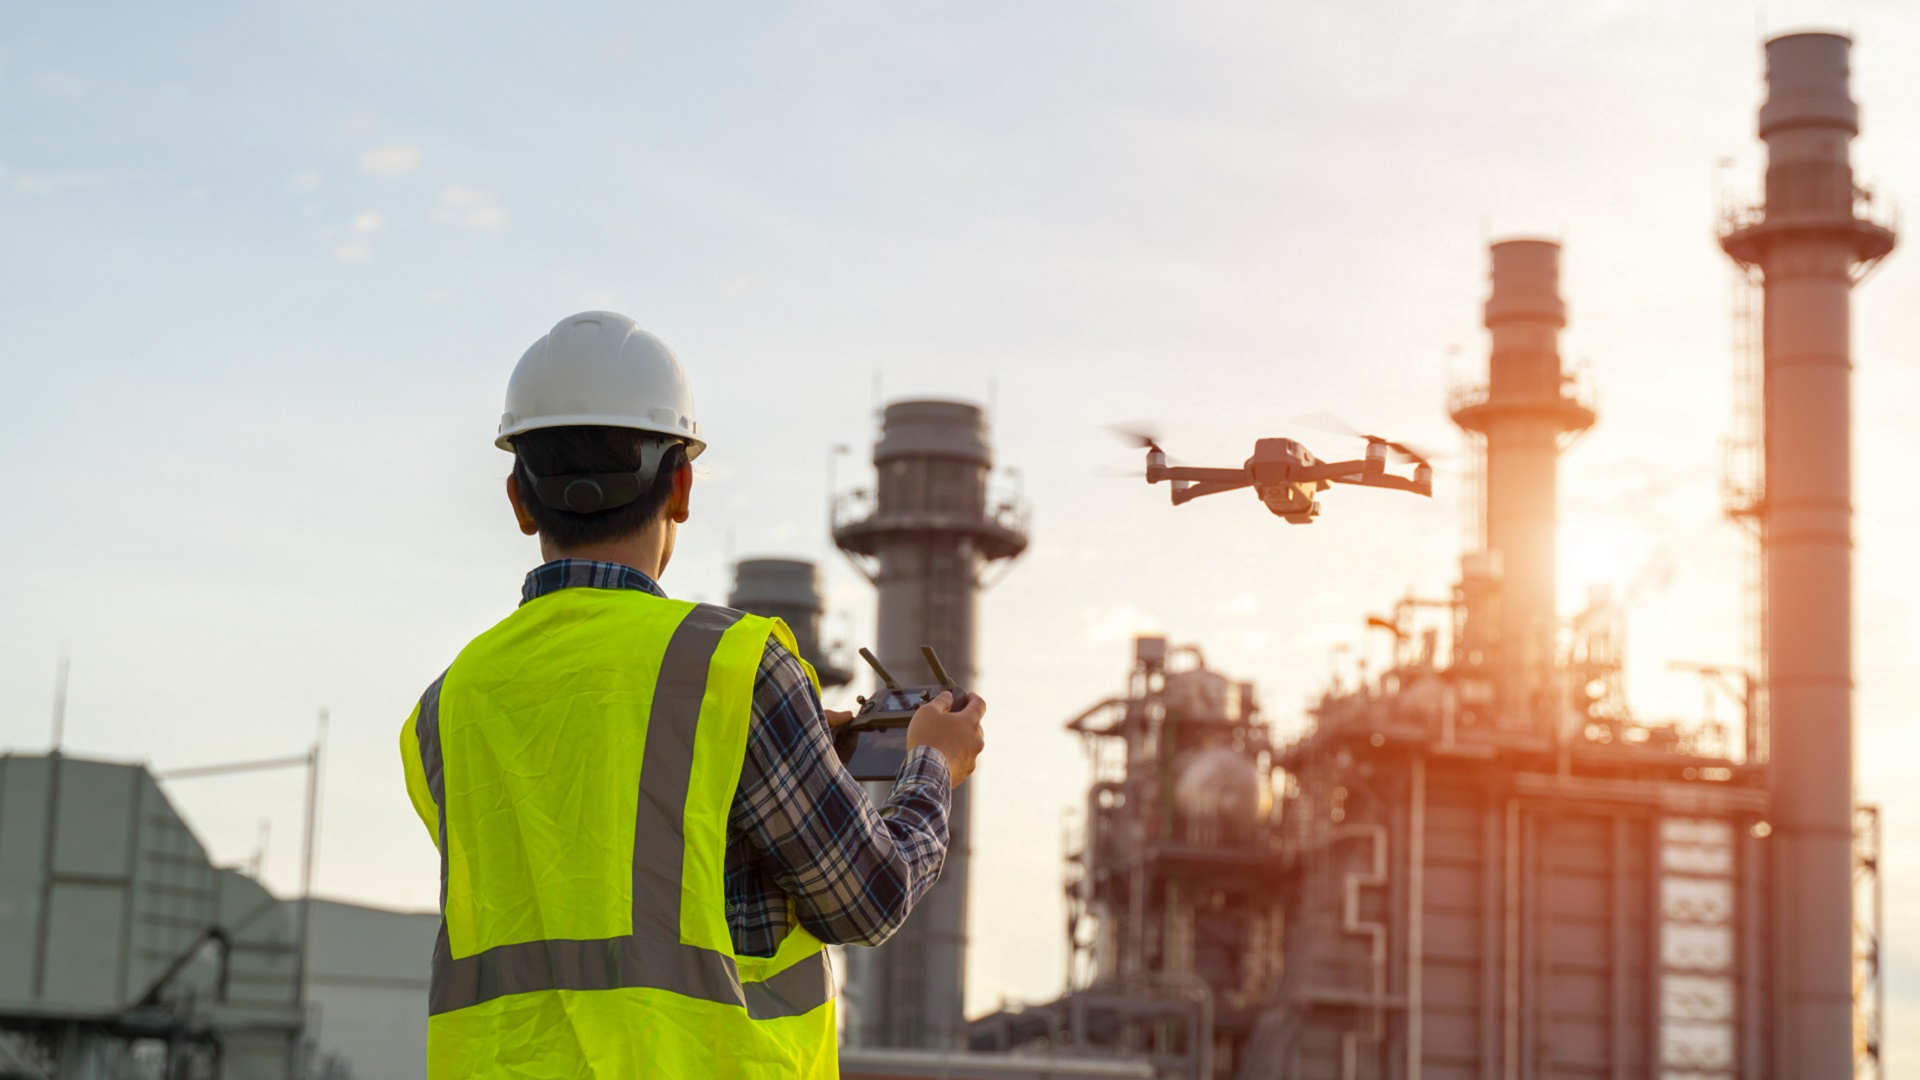 drones_drone in industry_drone use